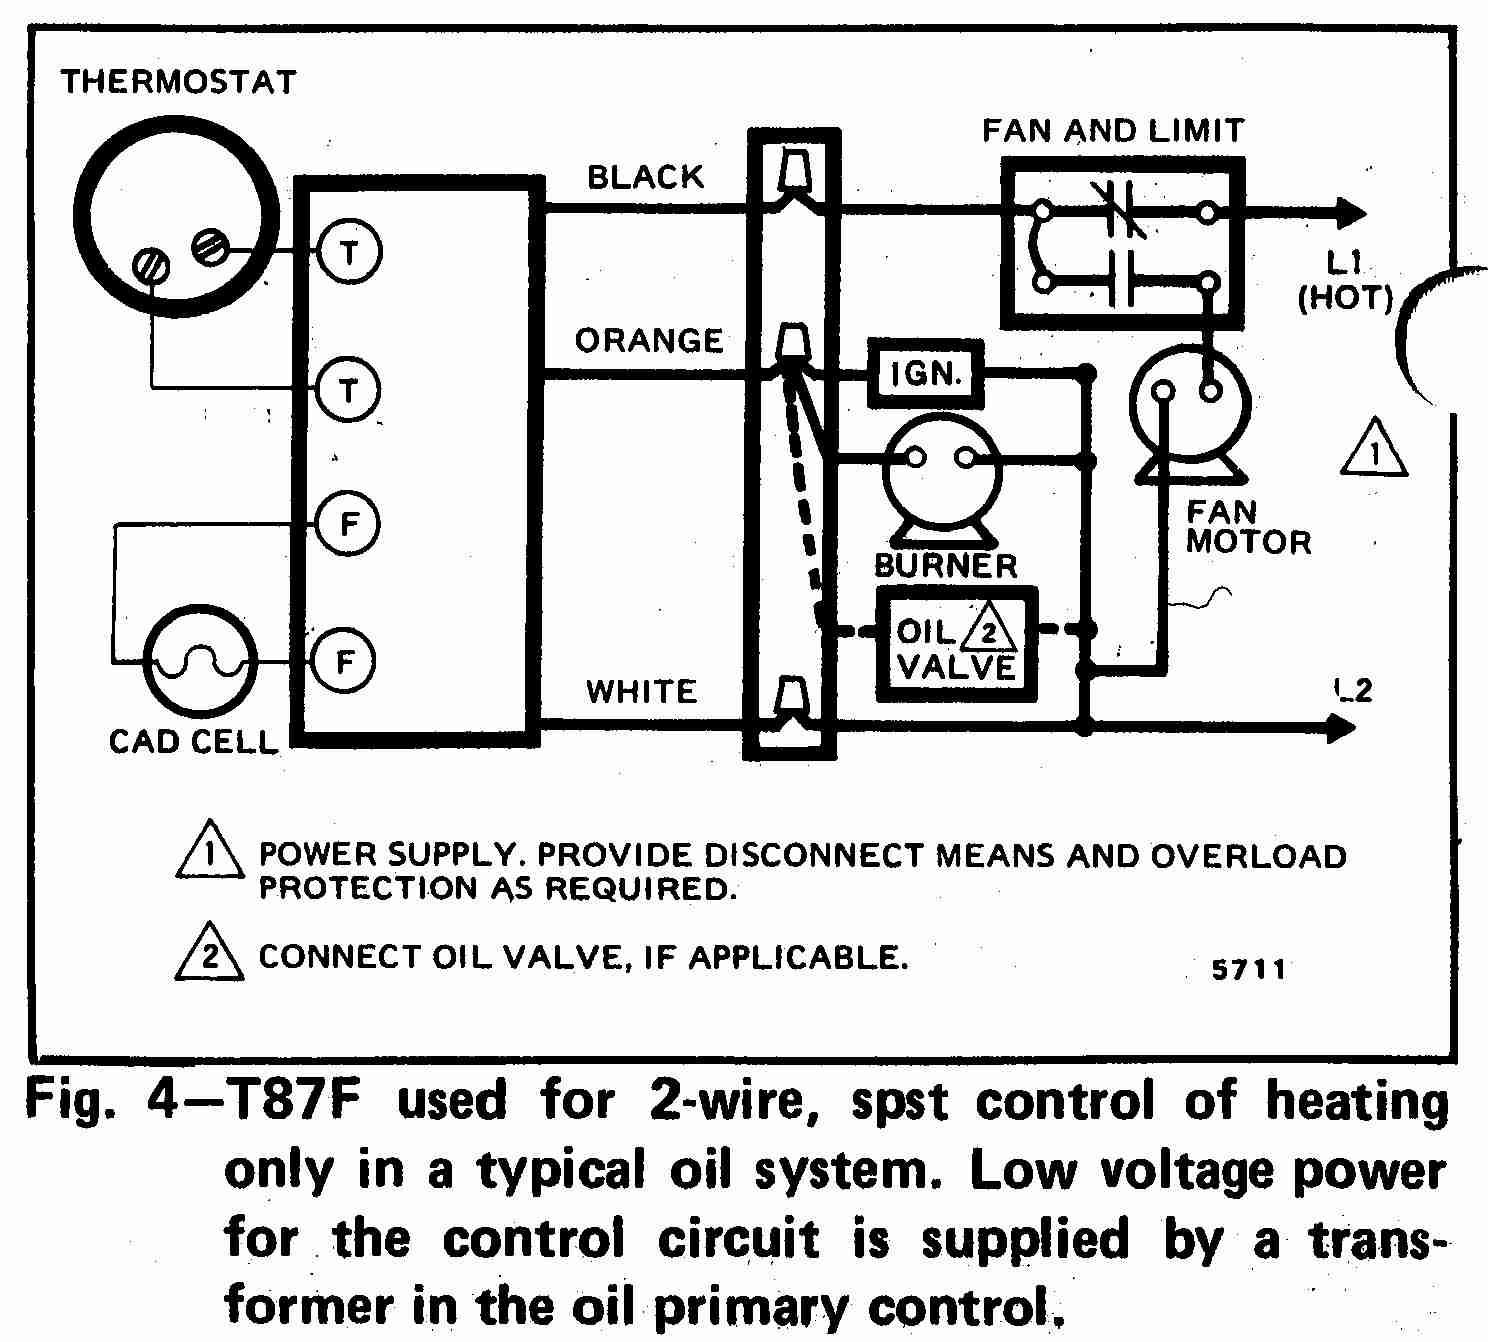 hight resolution of room thermostat wiring diagrams for hvac systems bradford white water heater thermostat gas valve thermostat wiring